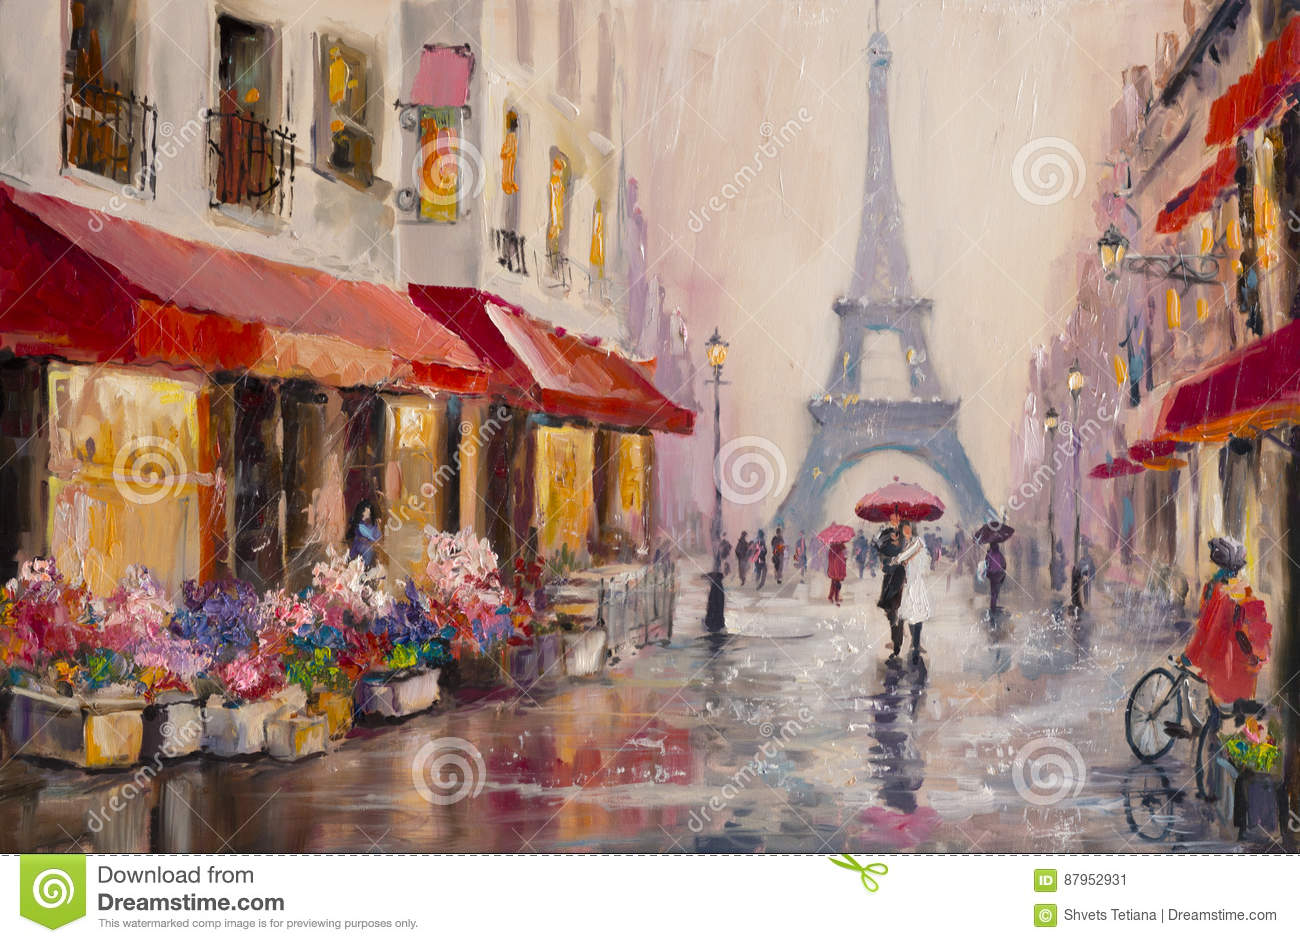 paris tour eiffel peinture l 39 huile originale sur la toile une paire d 39 amants sous un. Black Bedroom Furniture Sets. Home Design Ideas